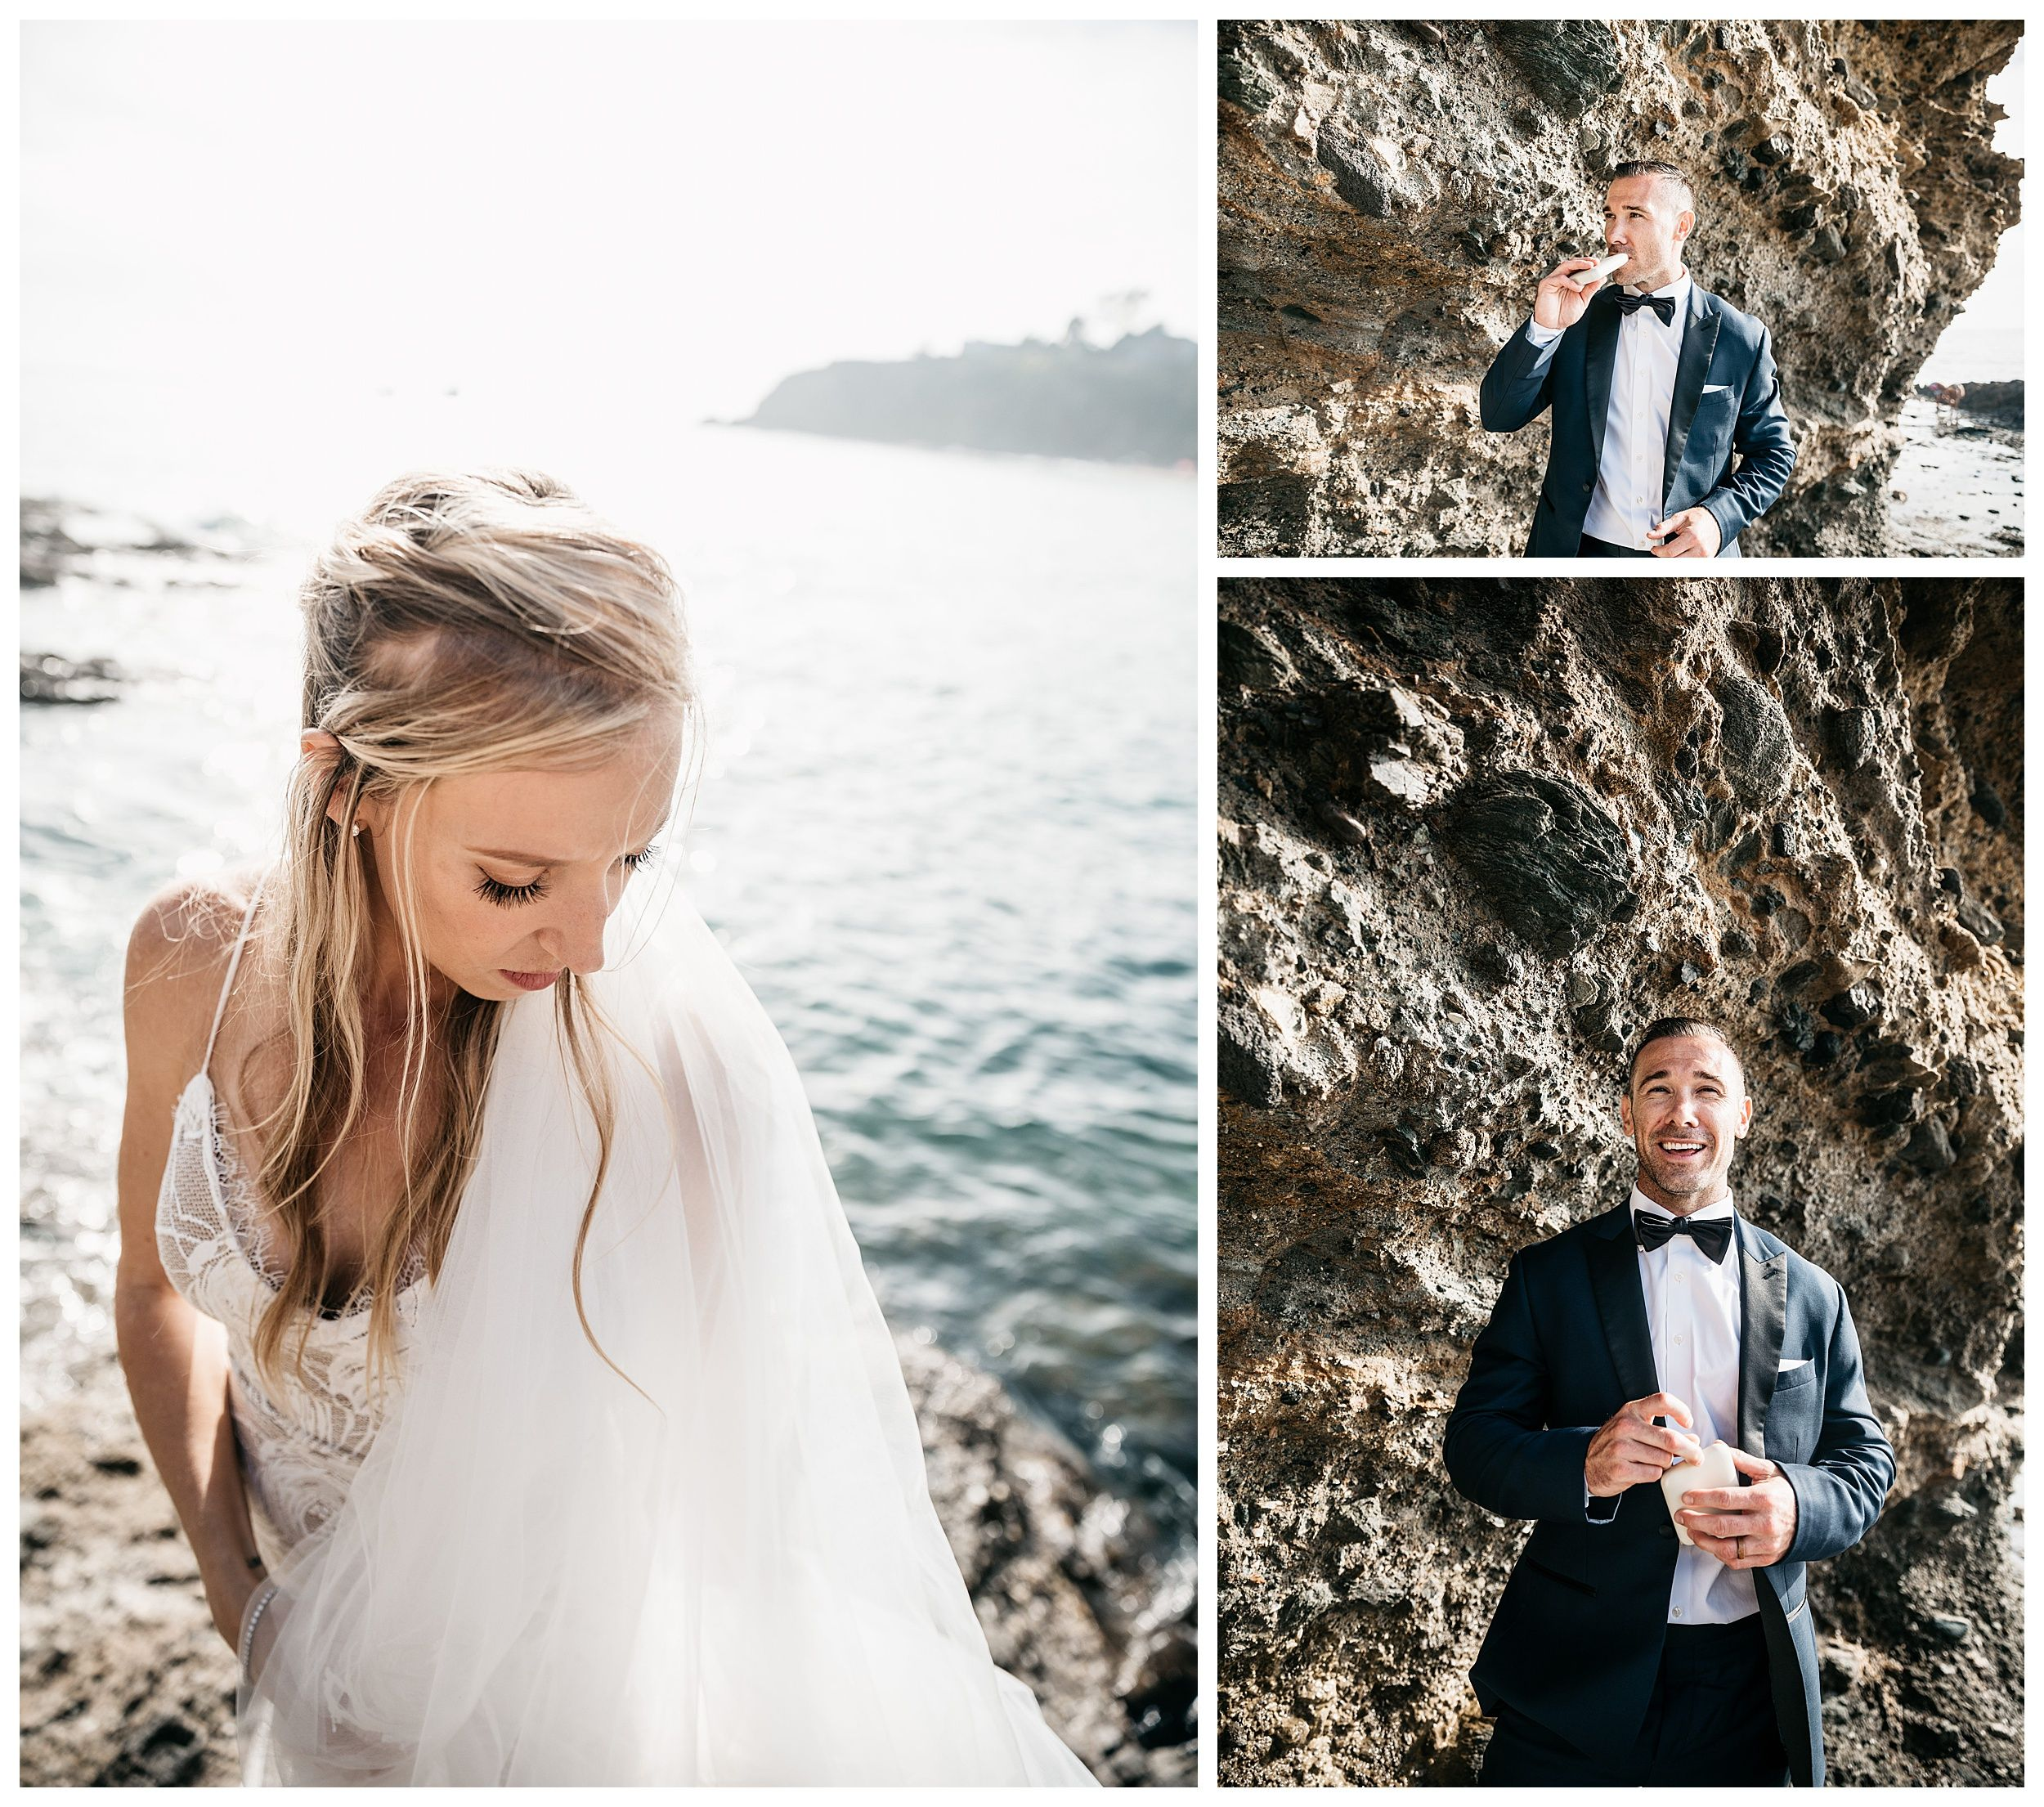 beach bridal photos, bridal photos on the beach, bride and groom portraits